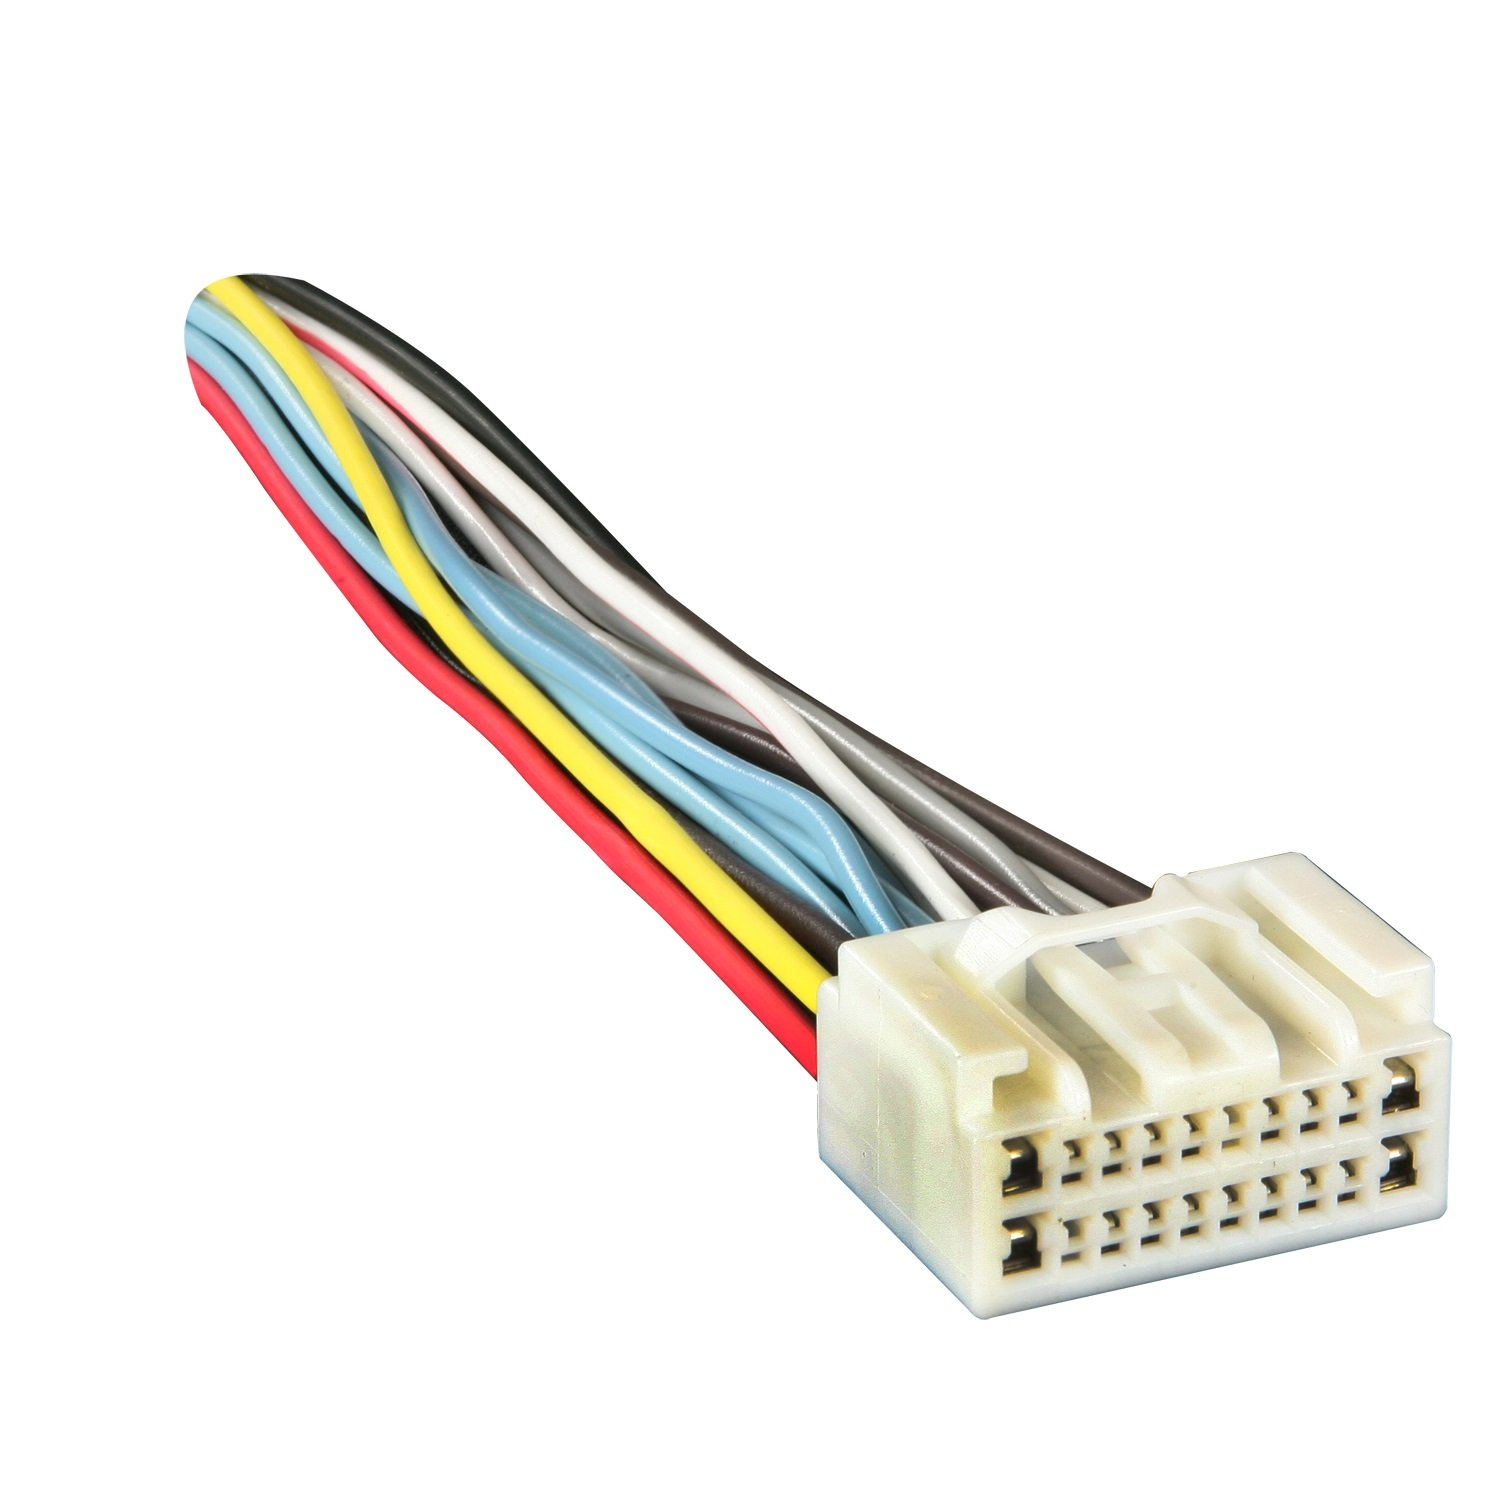 61k6eVpKLJL._SL1500_ amazon com metra 71 8113 reverse wiring harness for select 2000 toyota wiring harness at virtualis.co